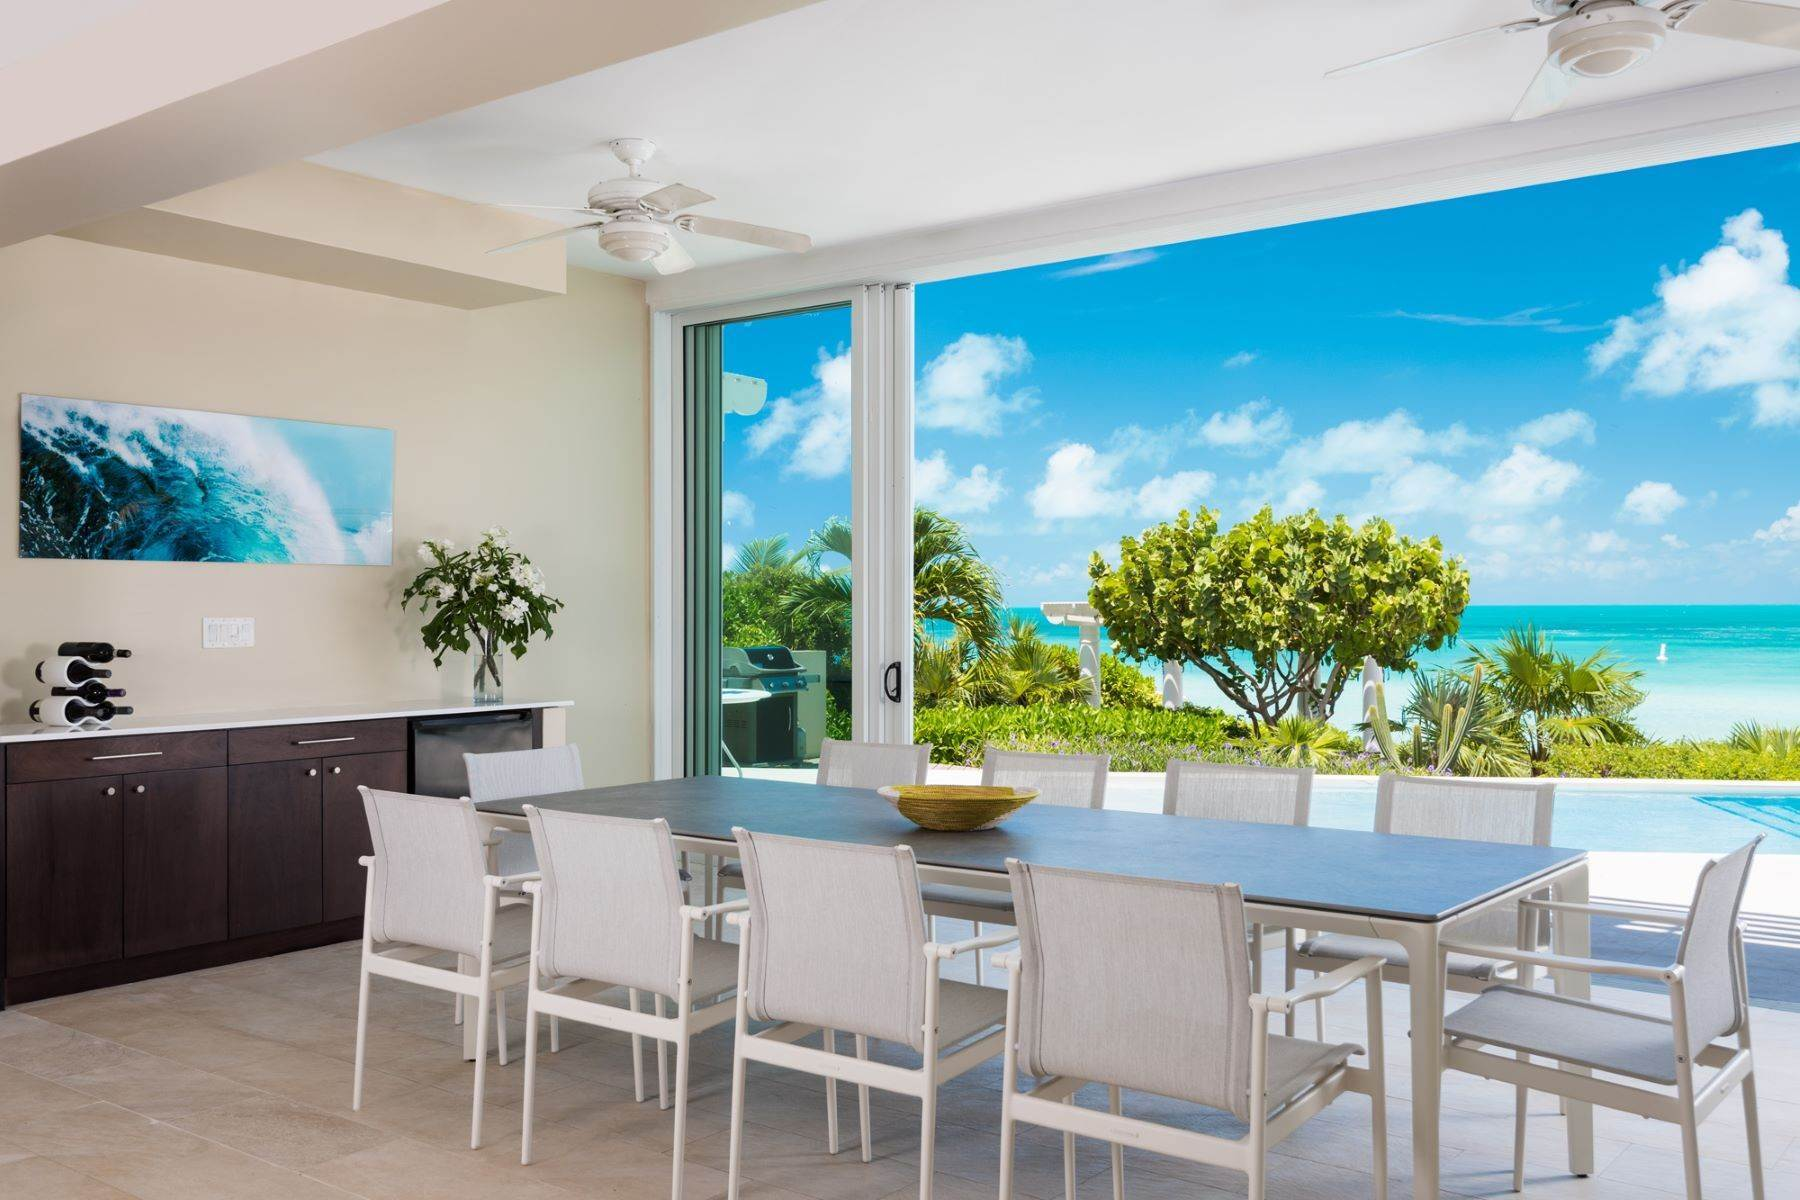 6. Single Family Homes for Sale at Sapodilla Bay, Providenciales Turks And Caicos Islands